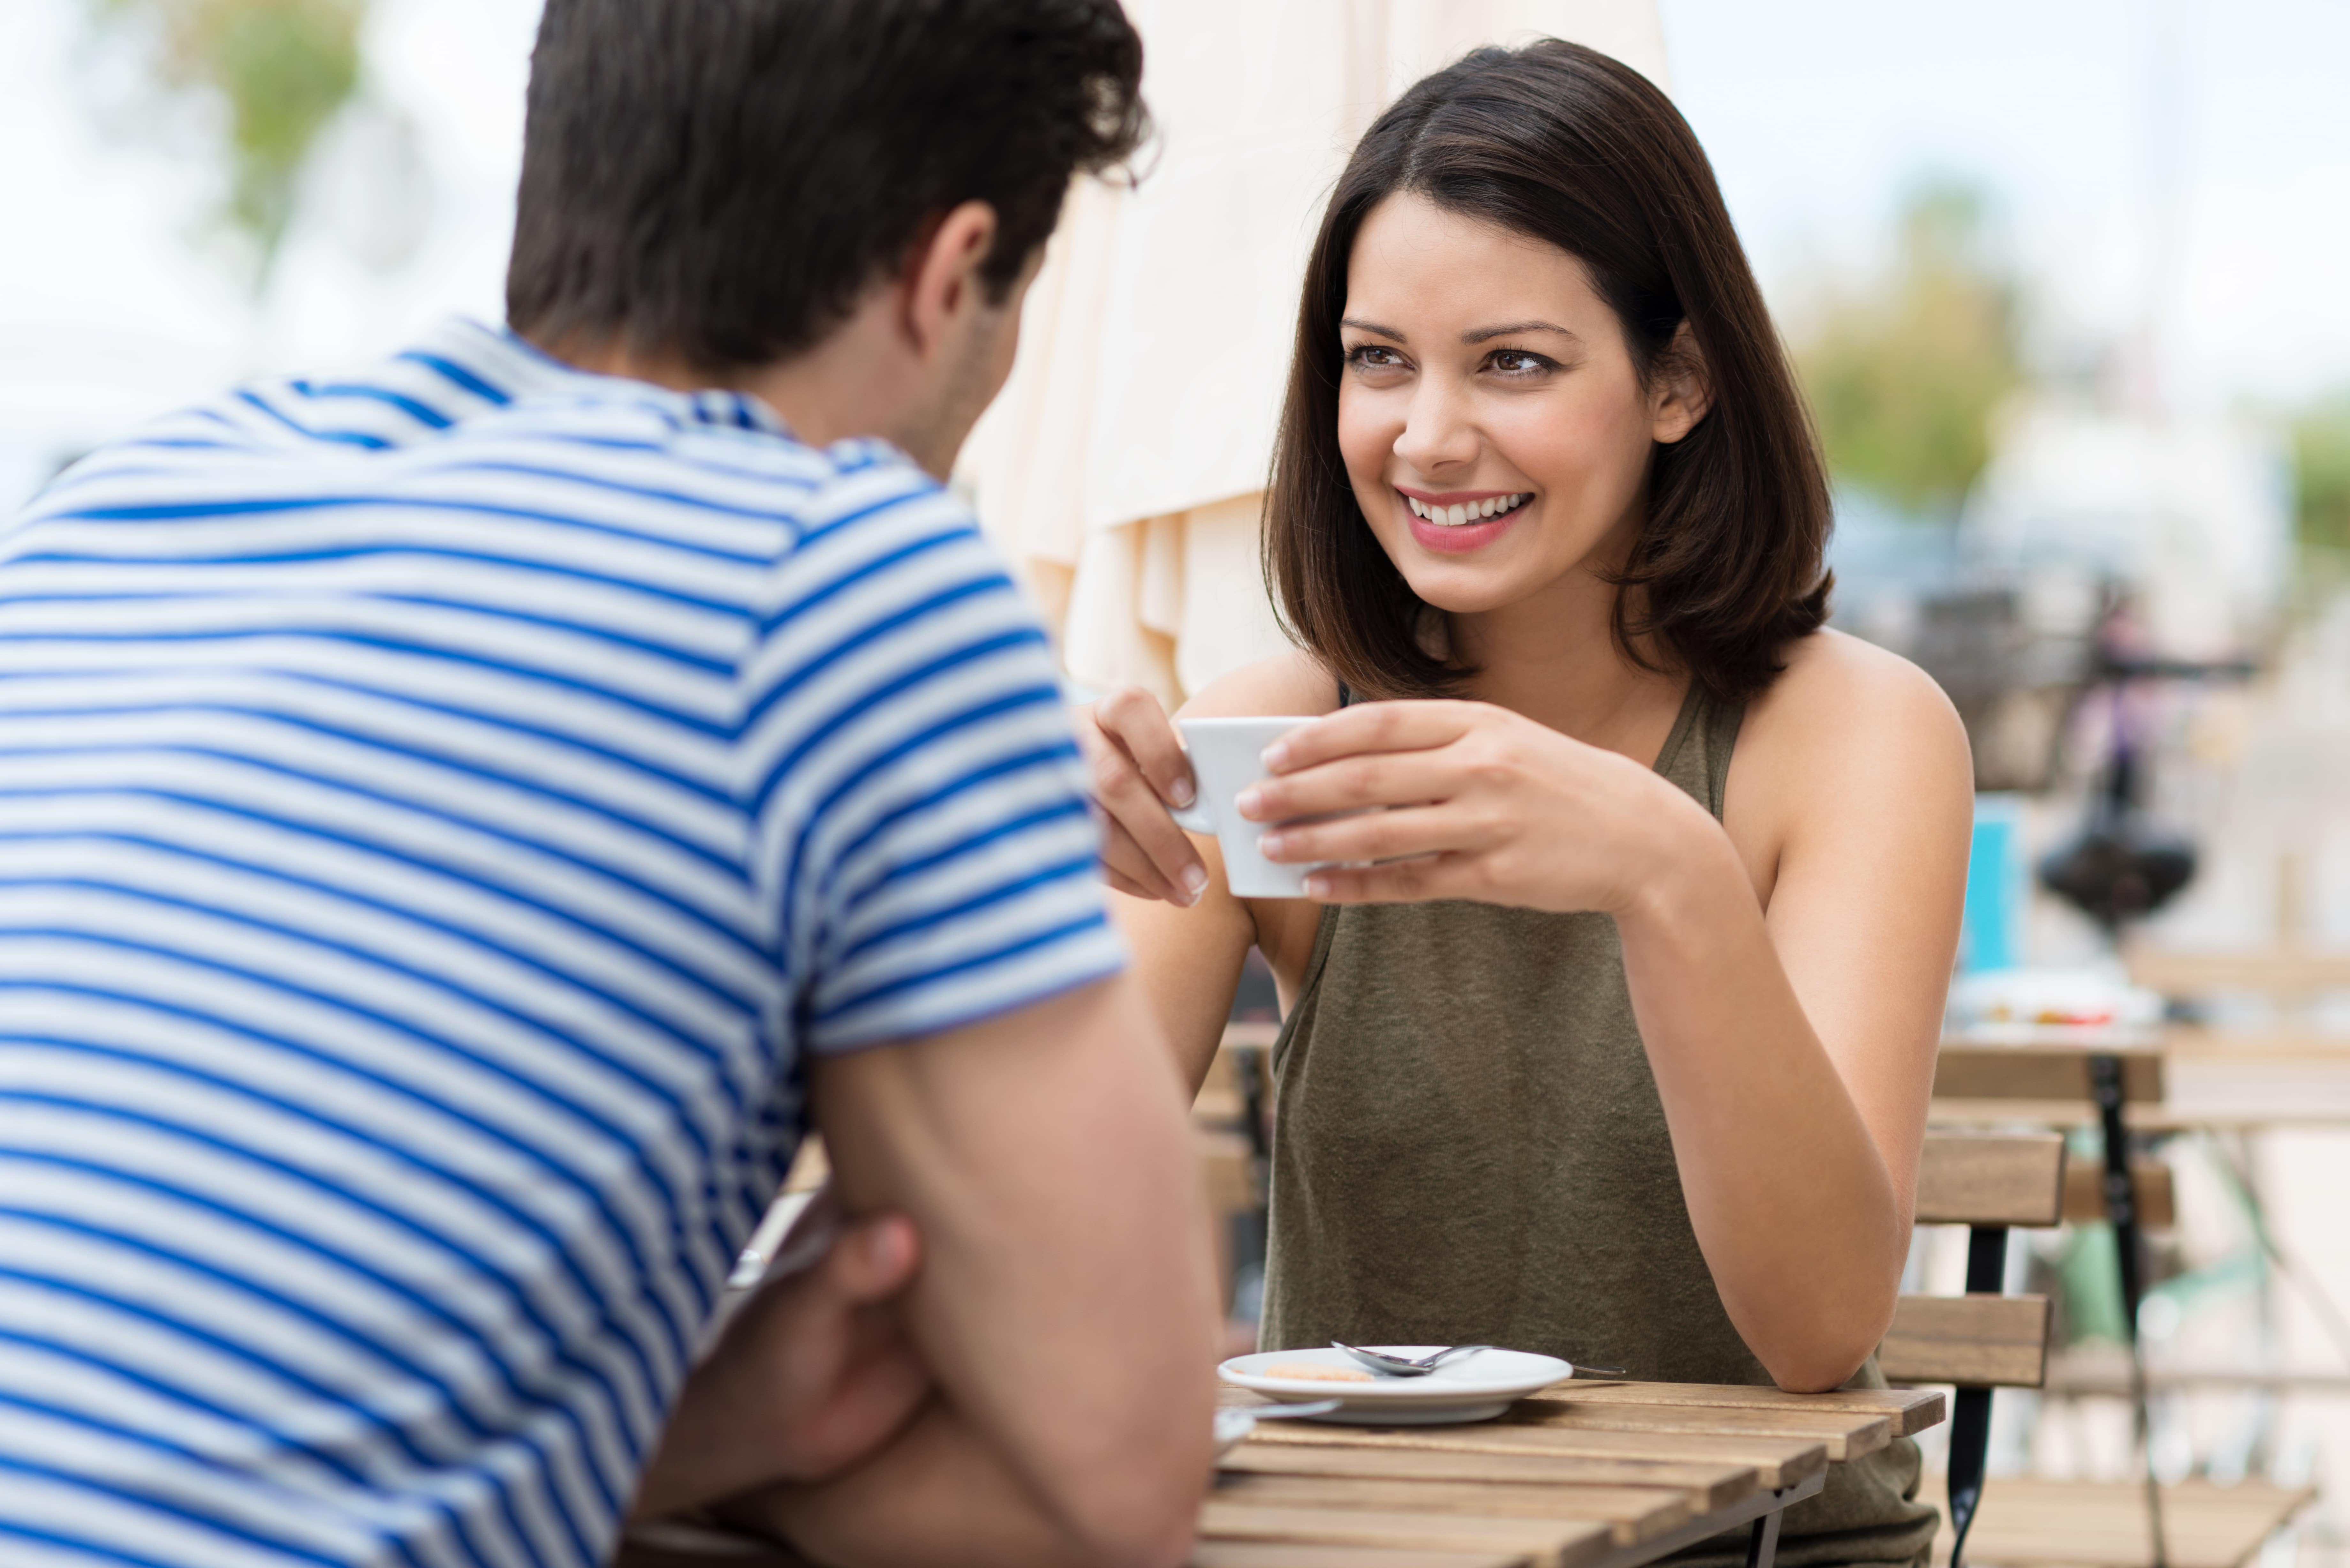 7 Types of Men You Should Never Date